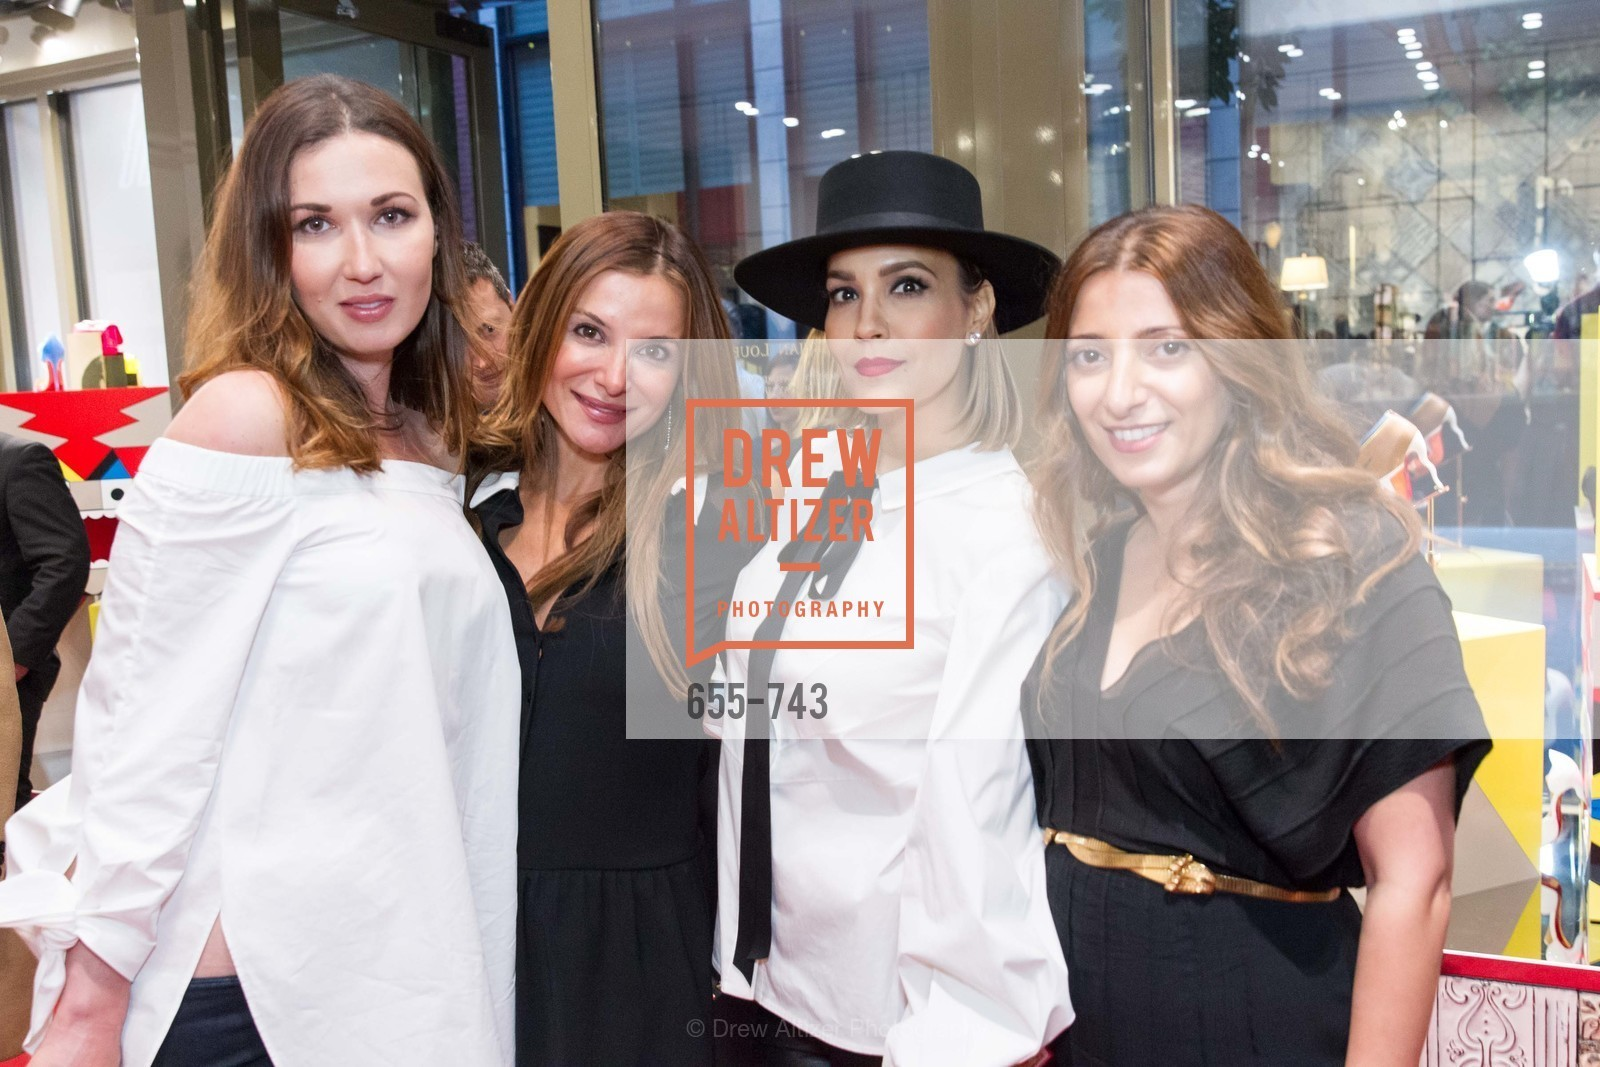 Camilla Papale, Claudia Ross, Lora DuBain, Kristina Musailov, CHRISTIAN LOUBOUTIN Anniversary Party, US, May 20th, 2015,Drew Altizer, Drew Altizer Photography, full-service agency, private events, San Francisco photographer, photographer california